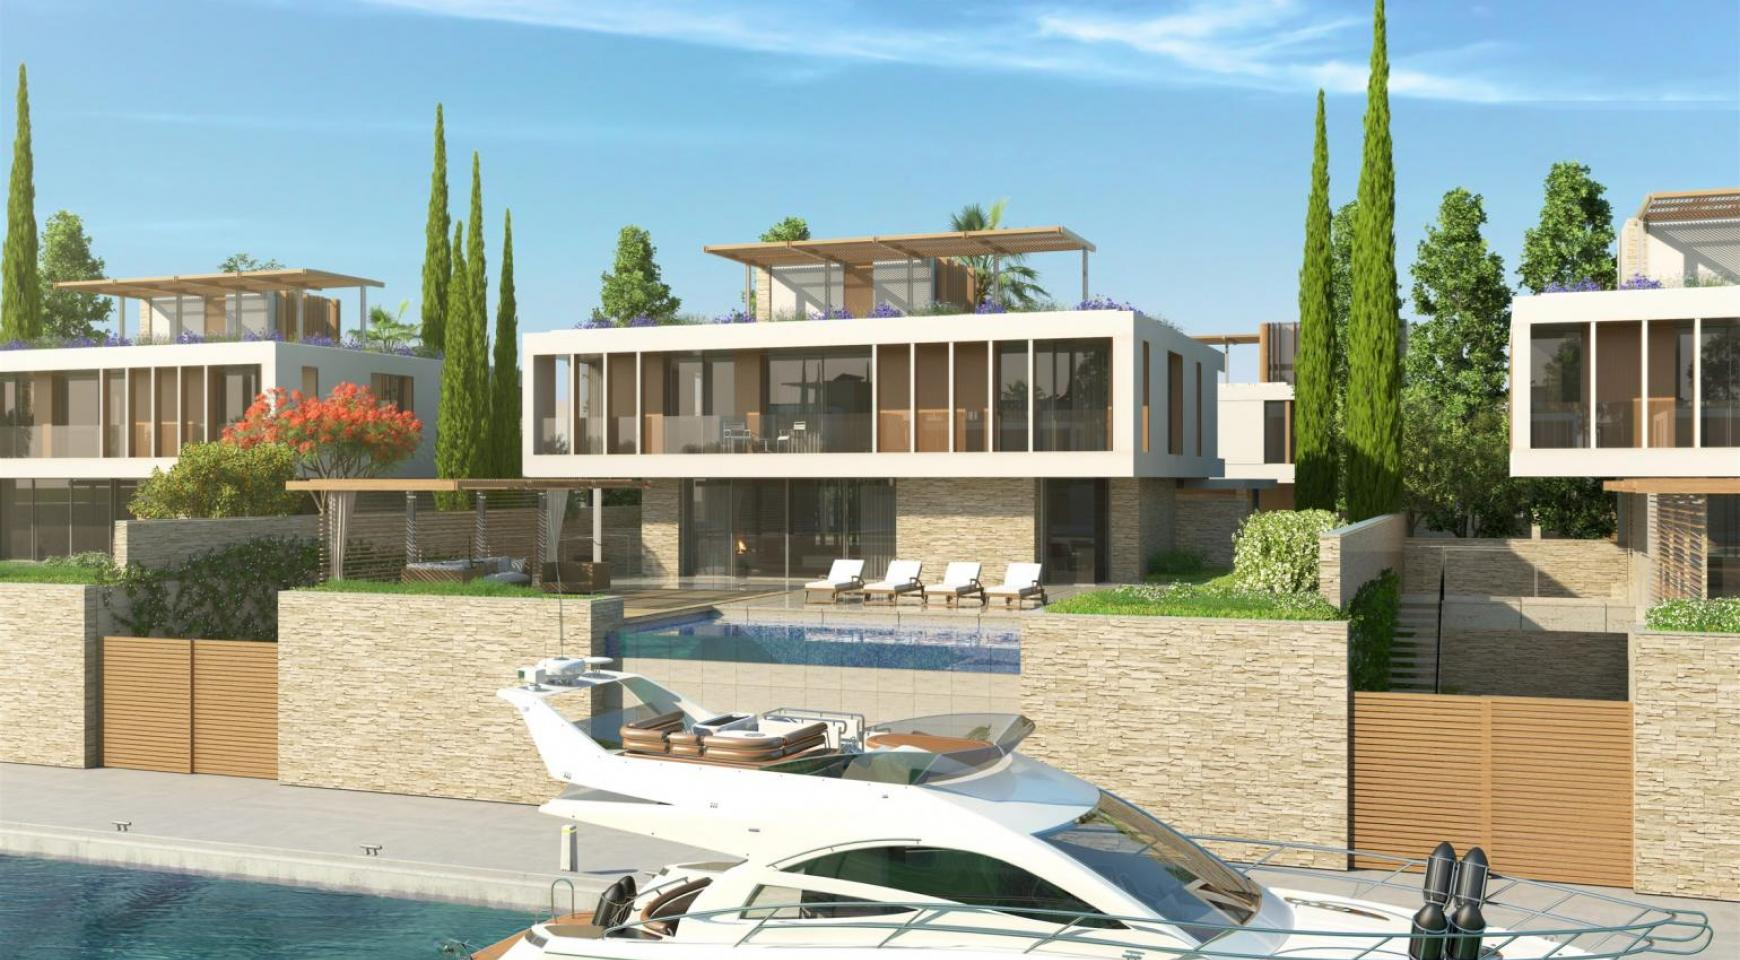 Stunning 5 Bedroom Villa in an Exclusive Project by the Sea - 9